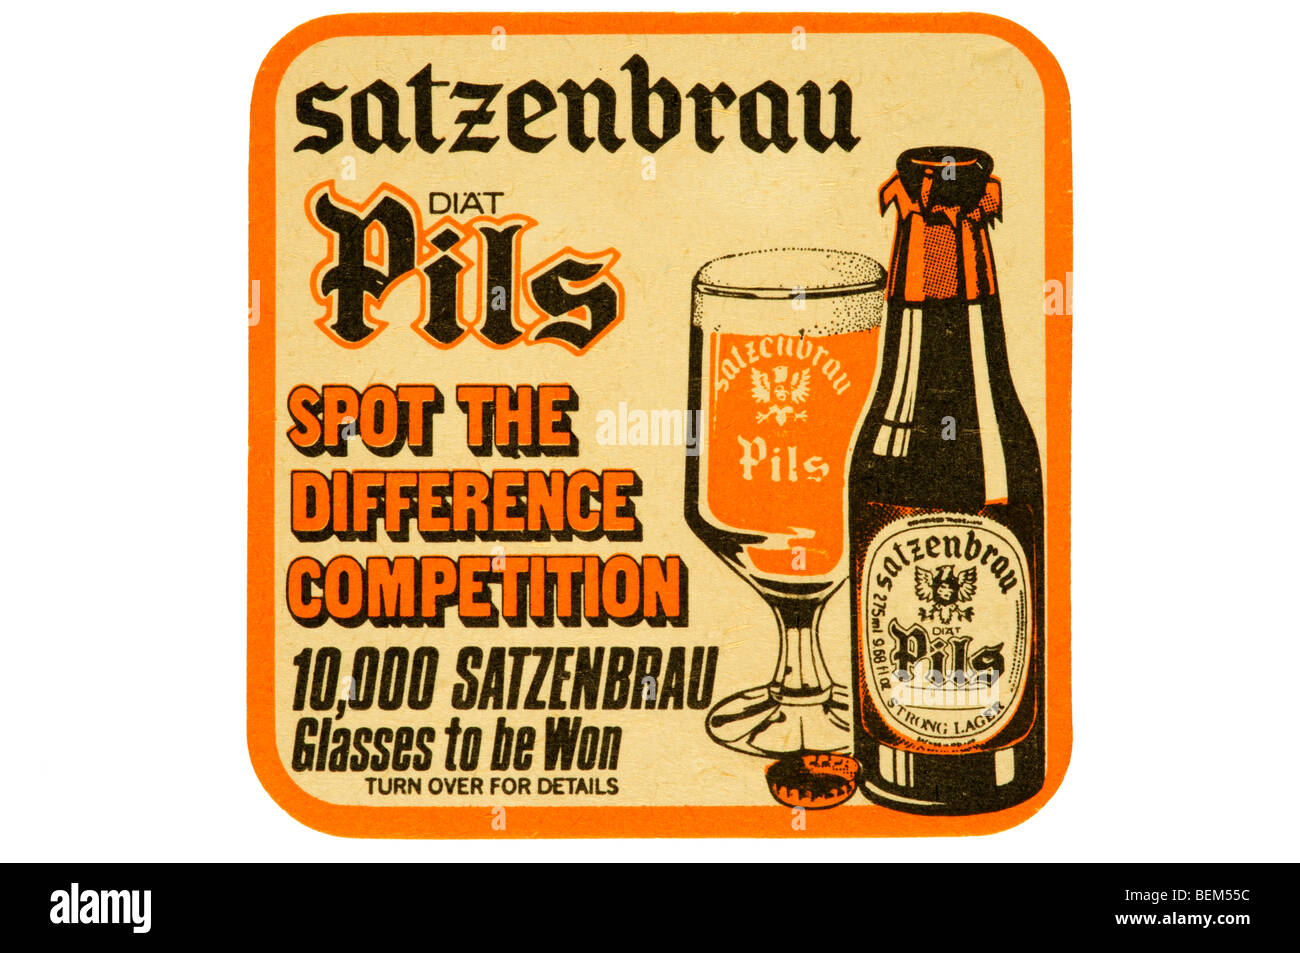 satzenbrau diat pils spot the difference competition - Stock Image